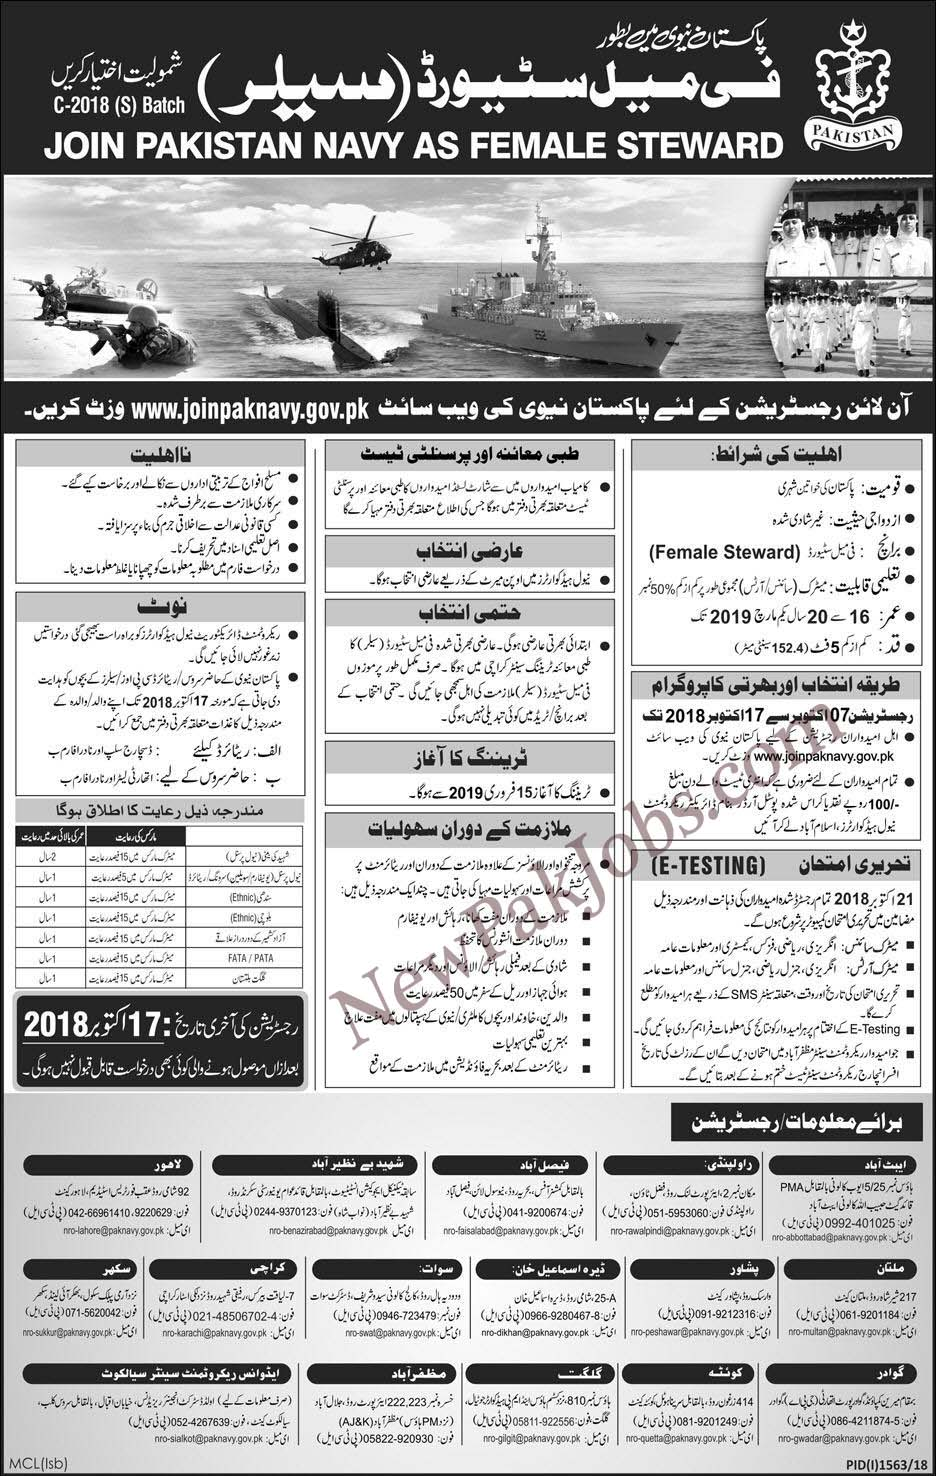 Join Pakistan Navy as Female Steward Sailor Batch C-2018